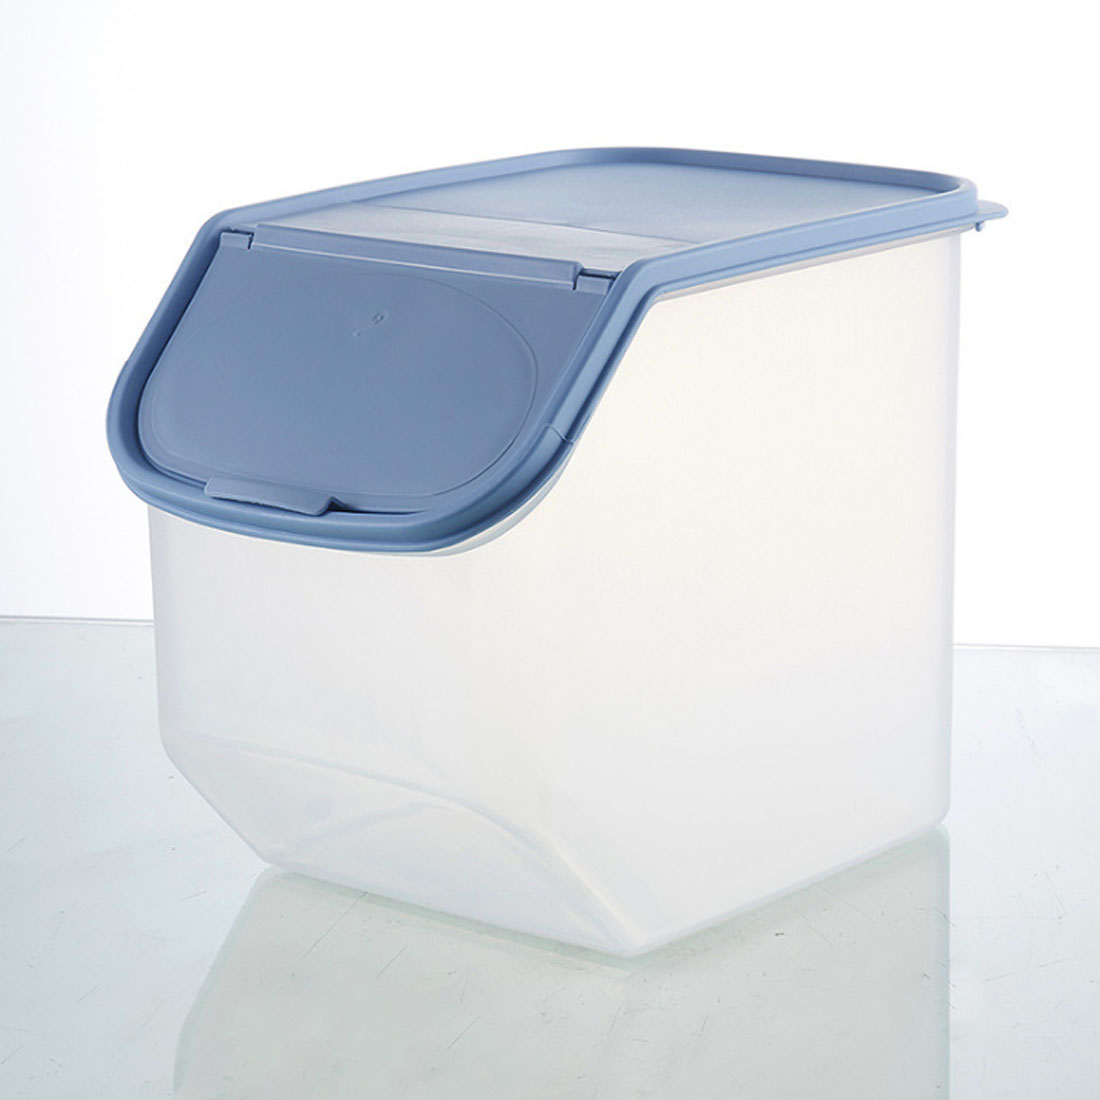 Storage-Container Miscellaneous Snacks Rice Kitchen Food With Measuring-Cup For Grains